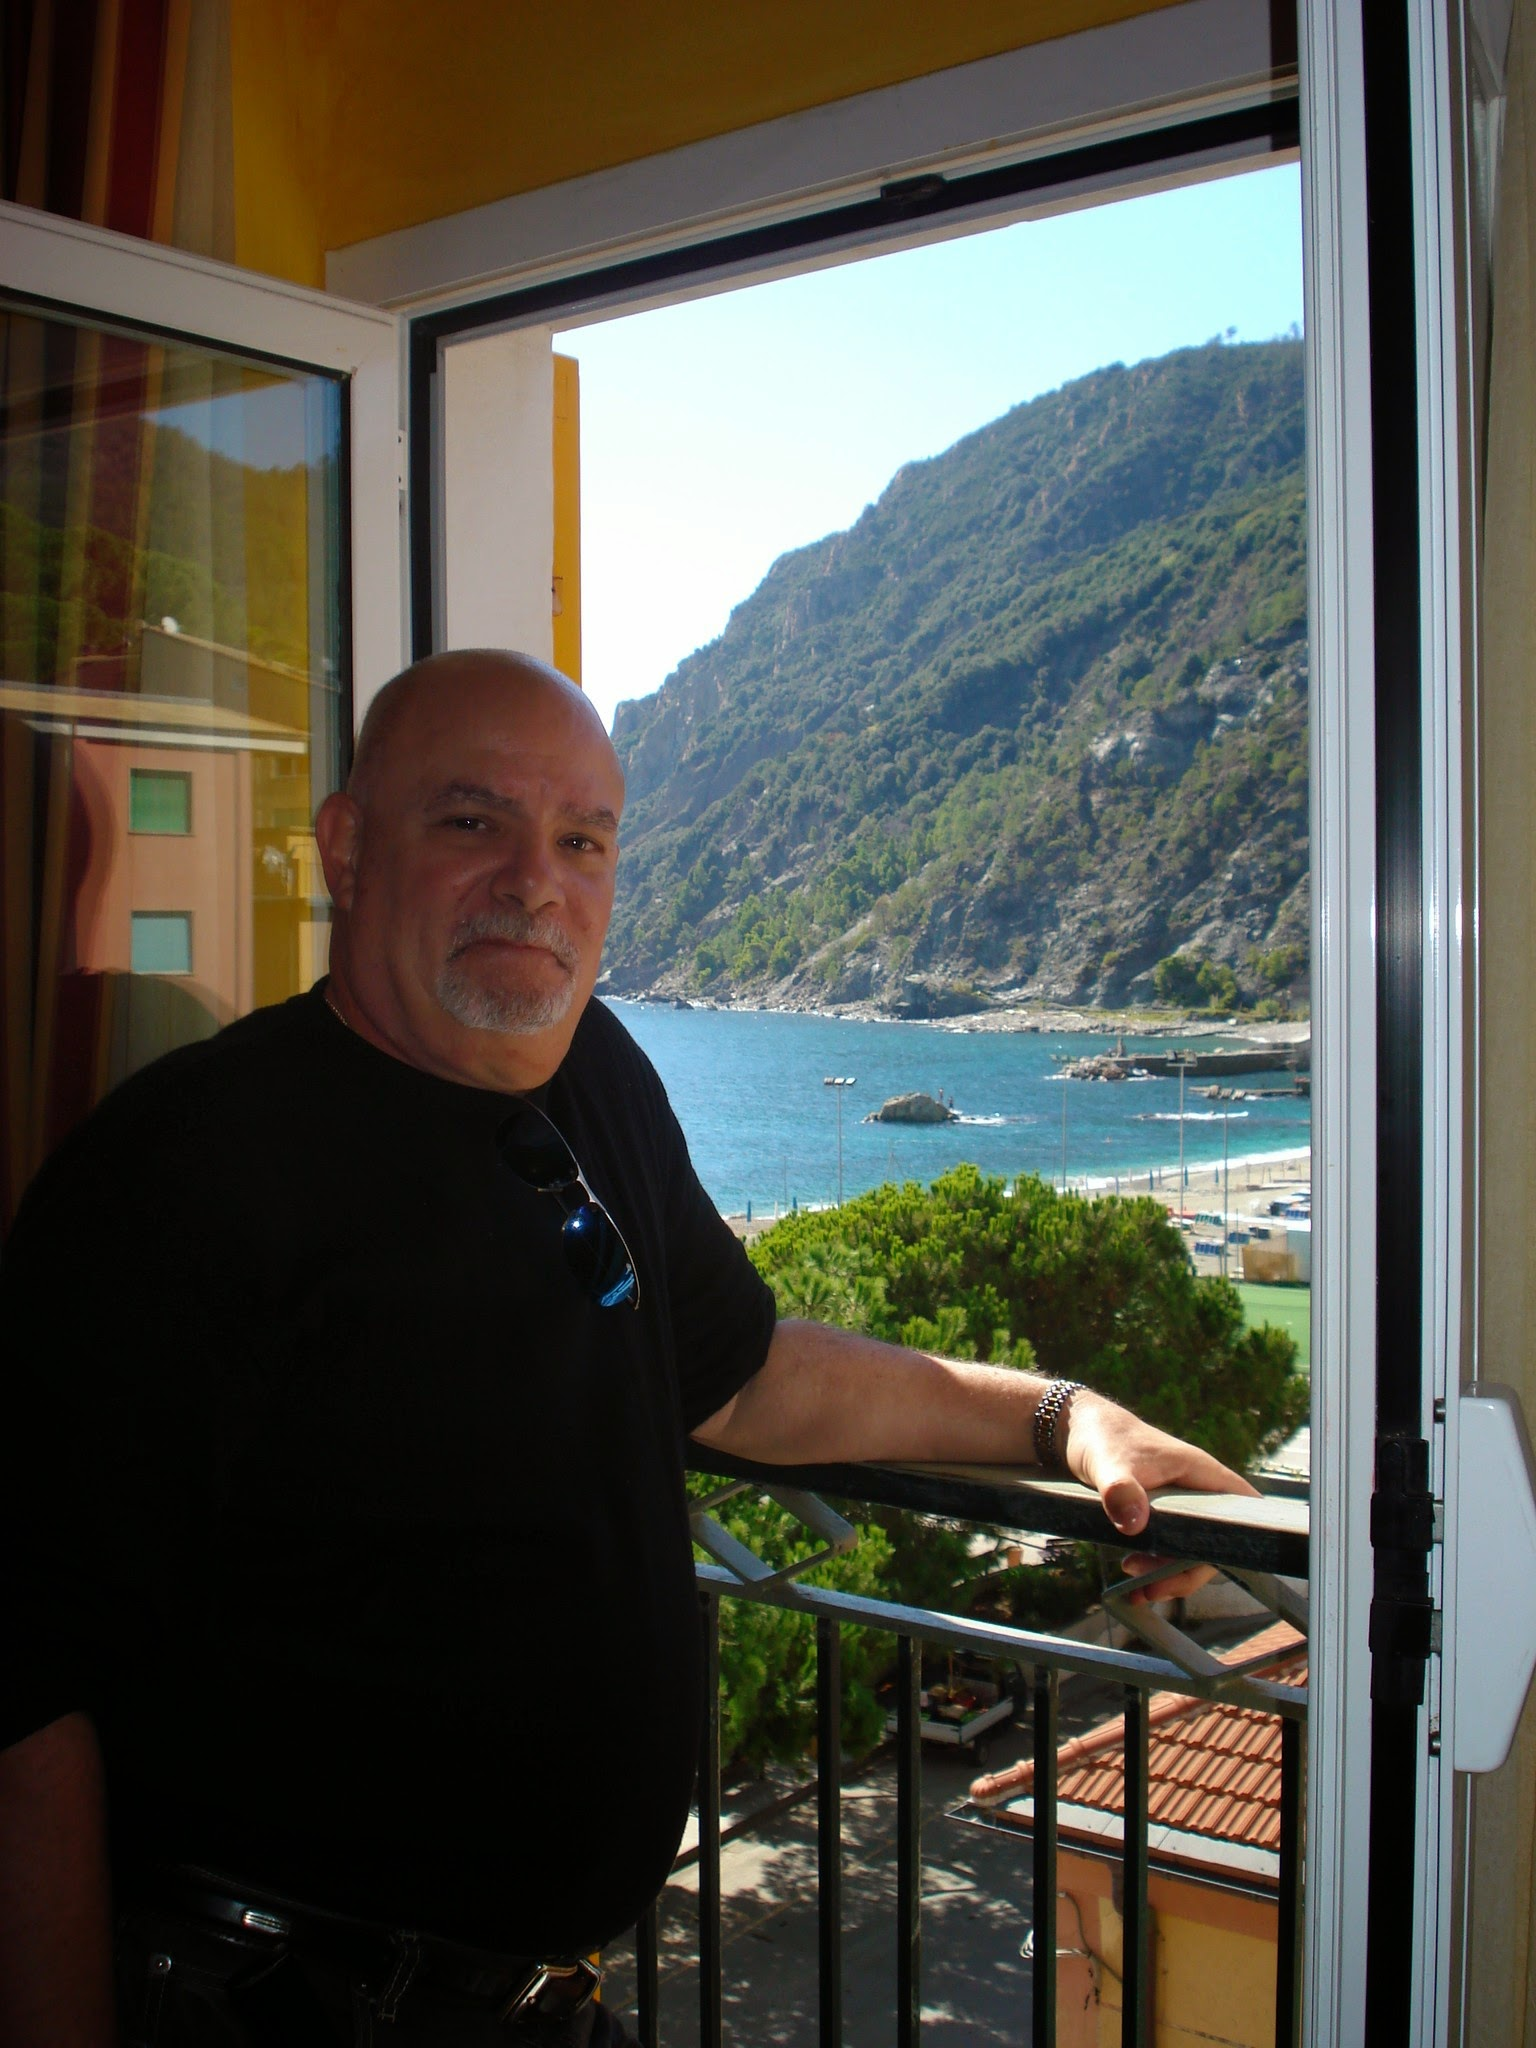 Gary out our window in the hotel in Cinque Terre, Italy. ouritalianjourney.com